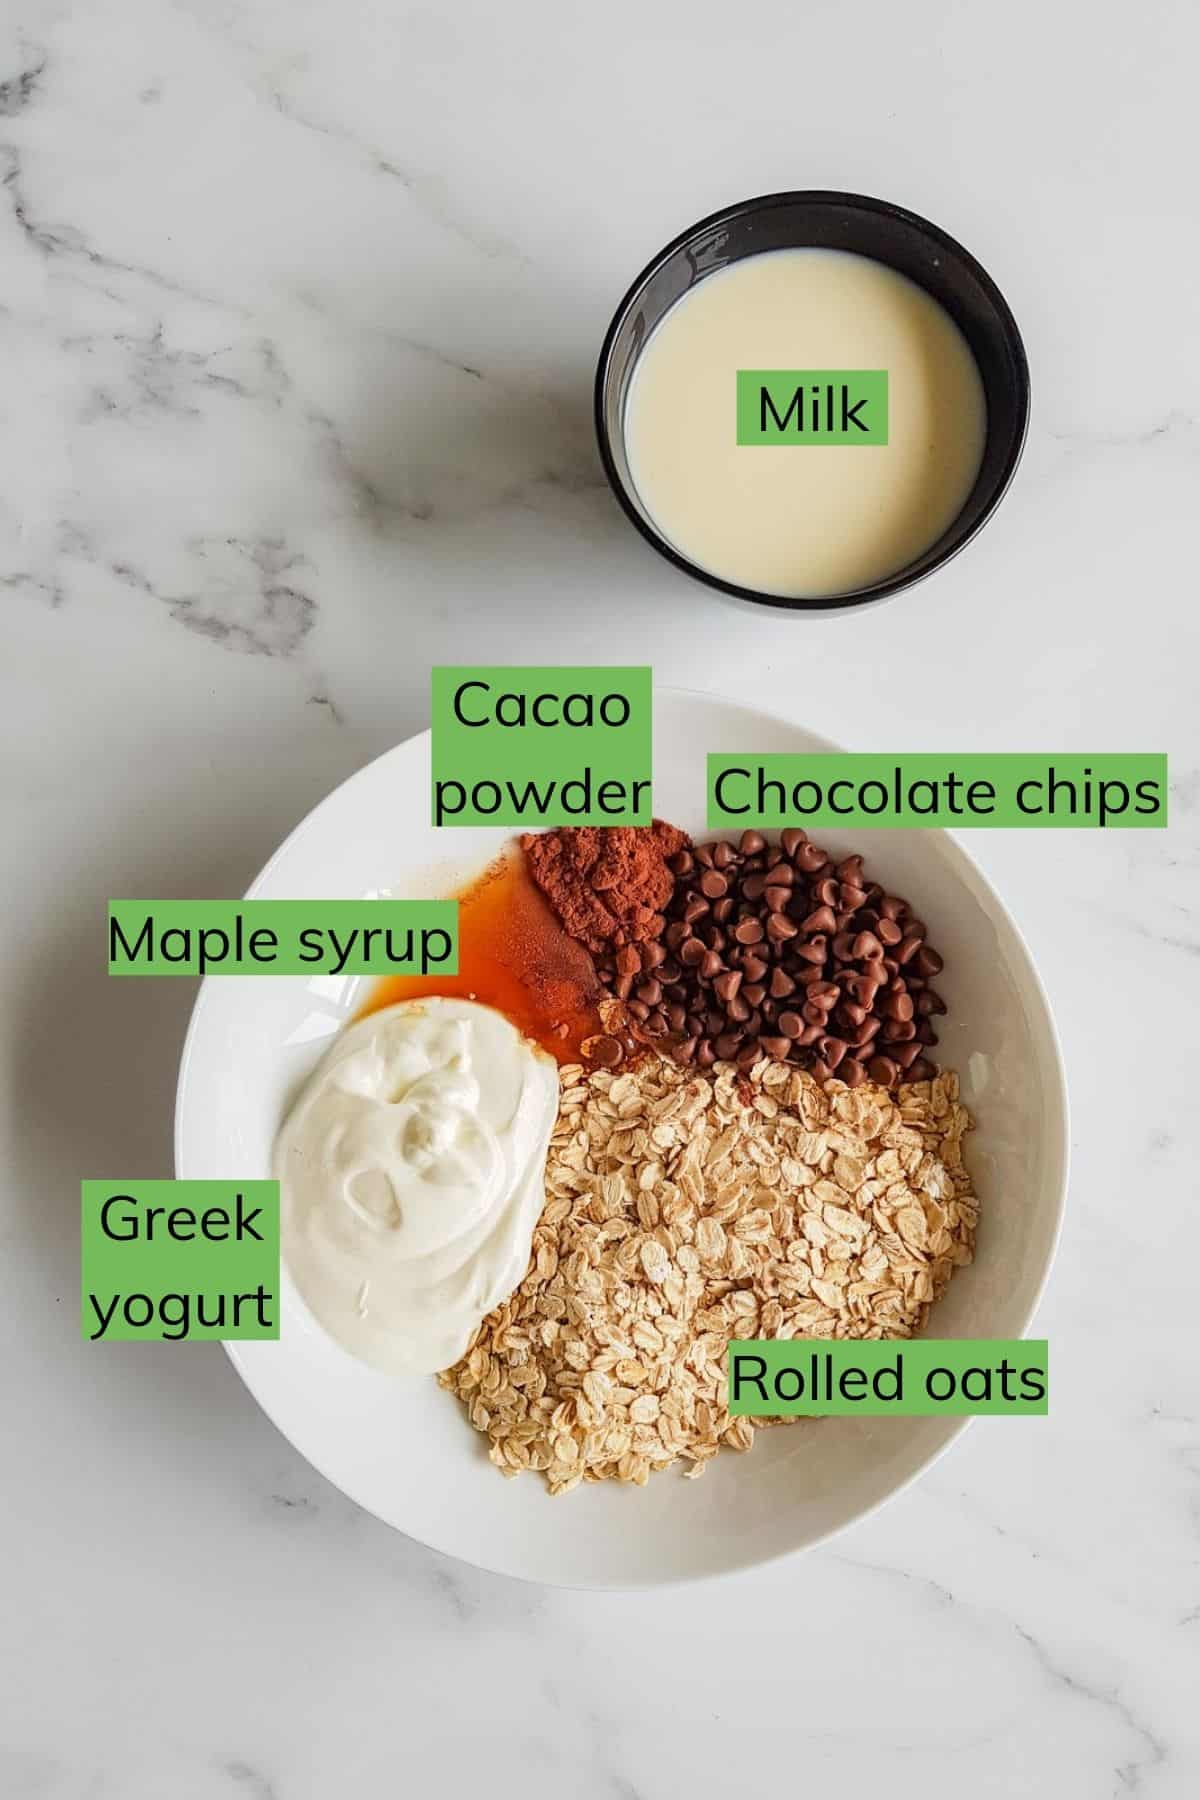 The ingredients required to make chocolate overnight oats laid out on a table.